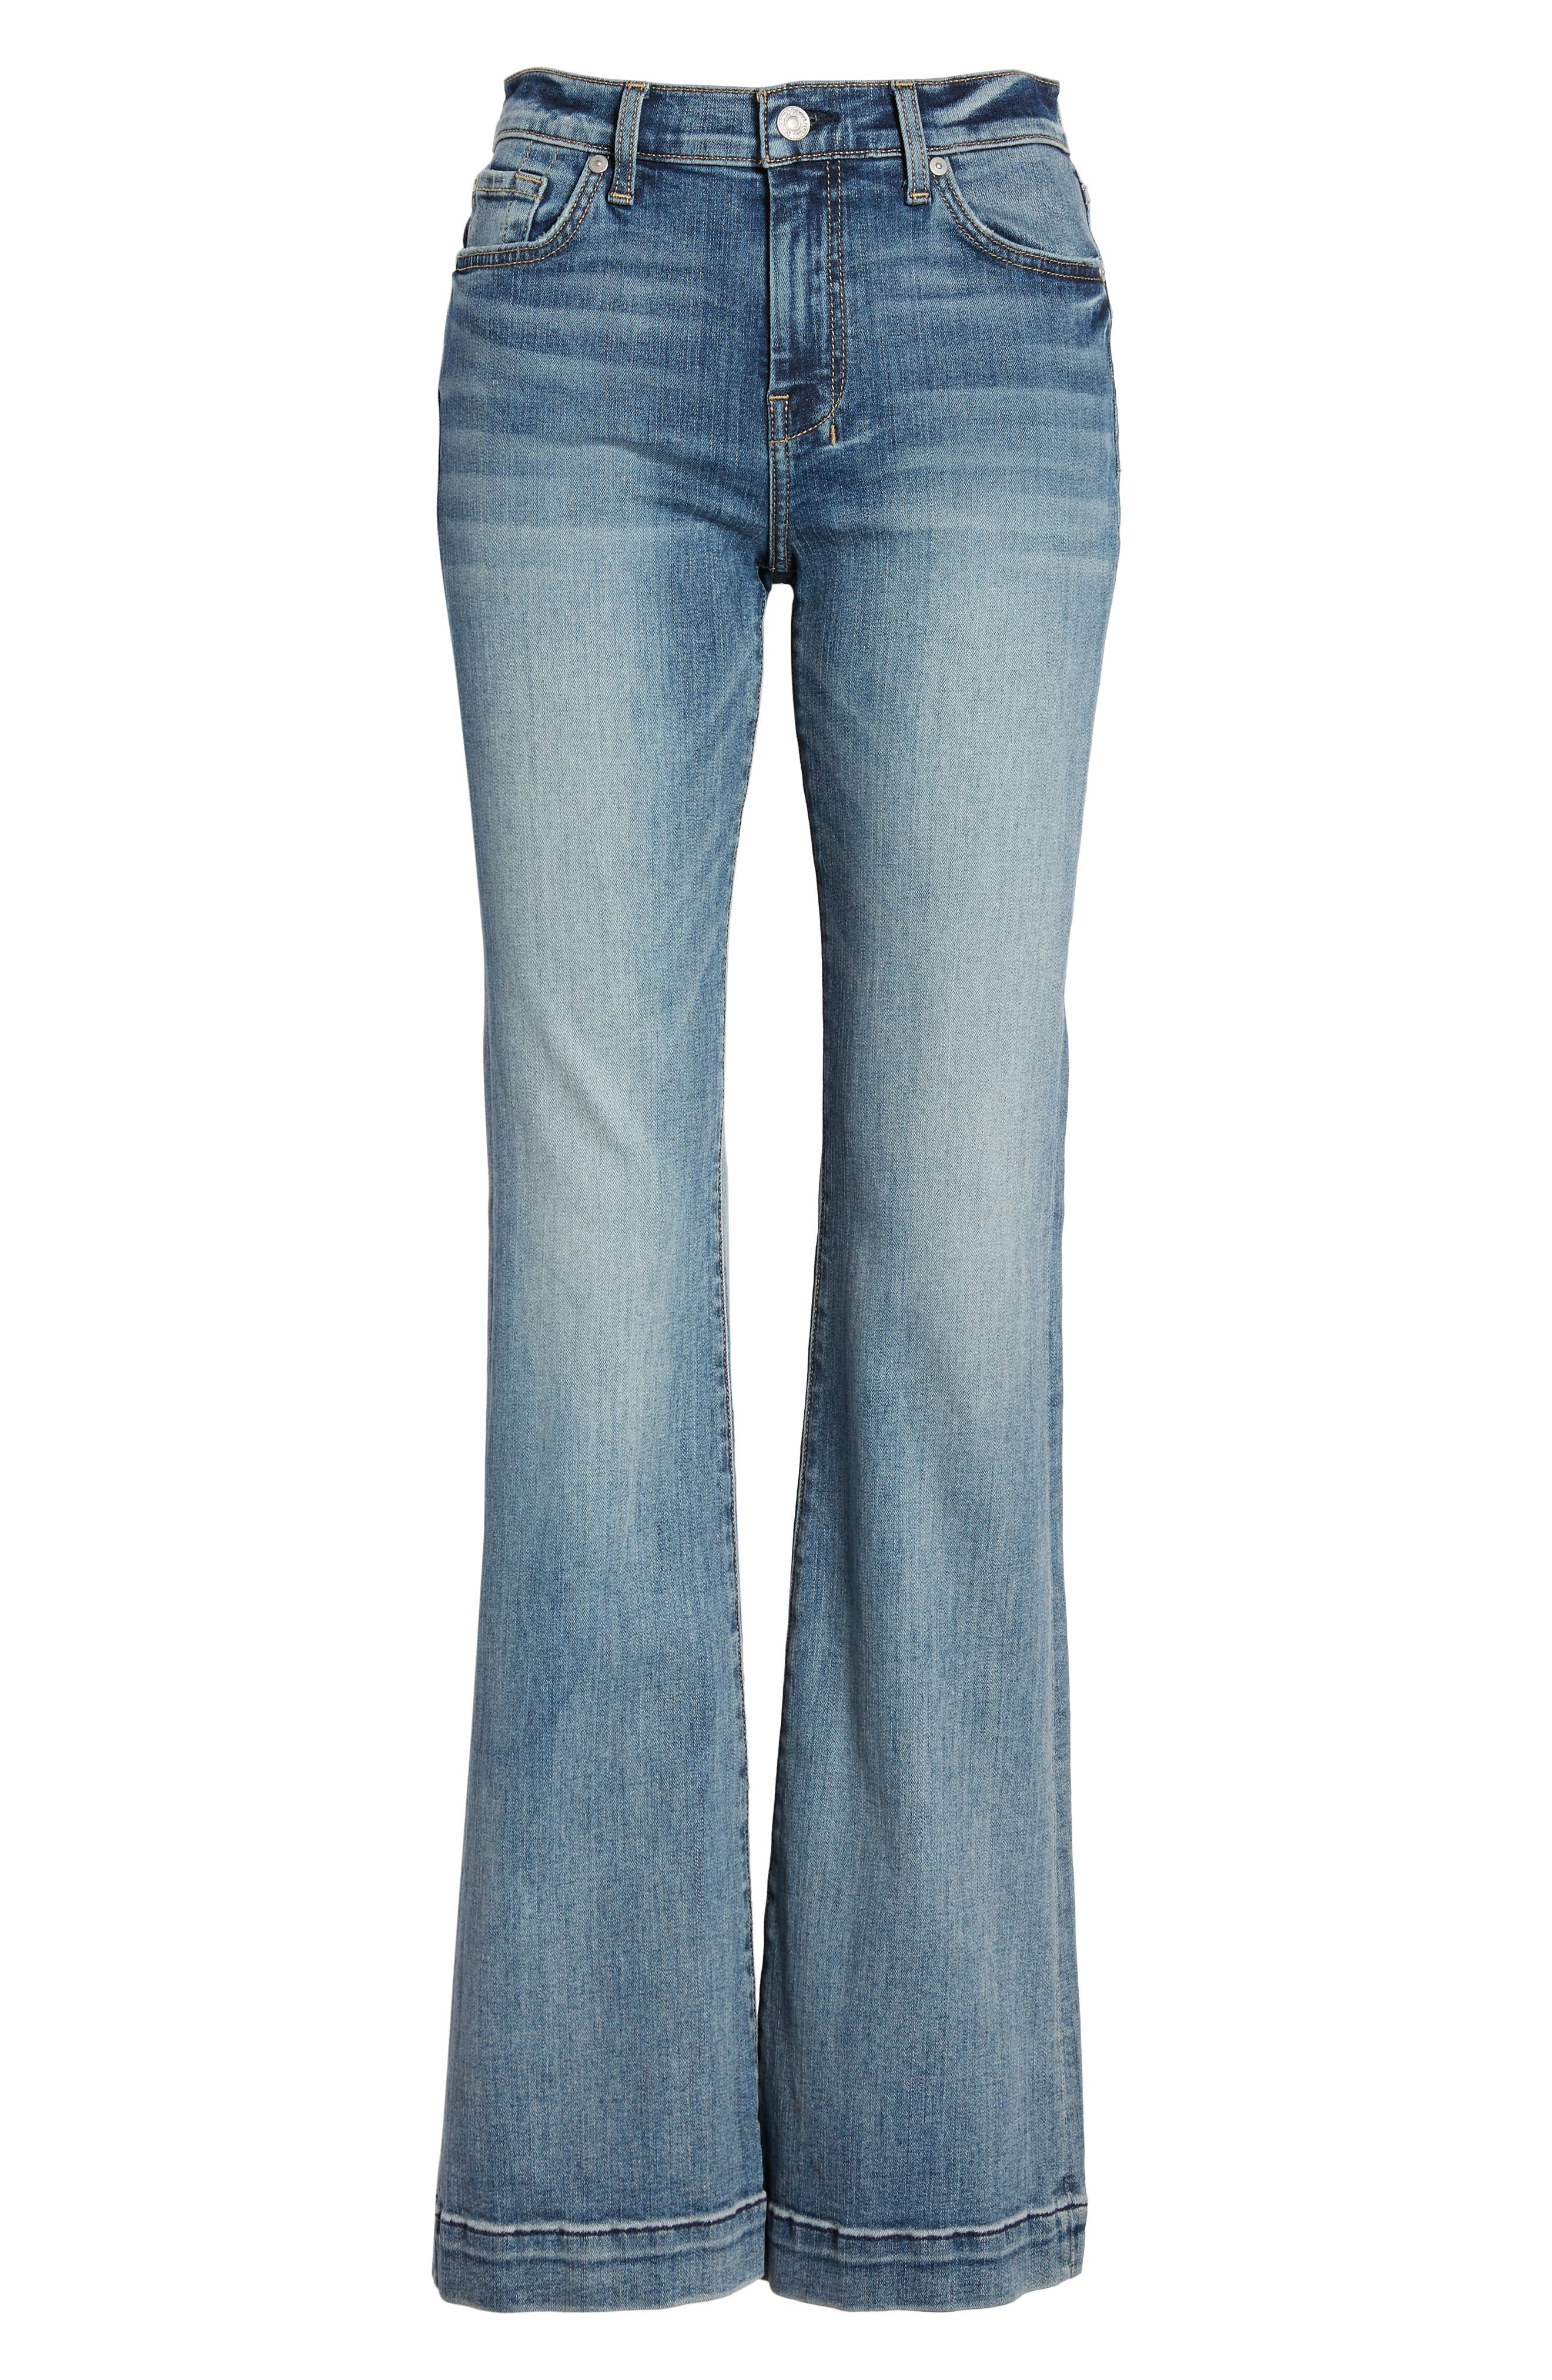 7 FOR ALL MANKIND<SUP>®</SUP>, Dojo Wide Leg Jeans, Alternate thumbnail 7, color, BAIR AUTHENTIC FORTUNE